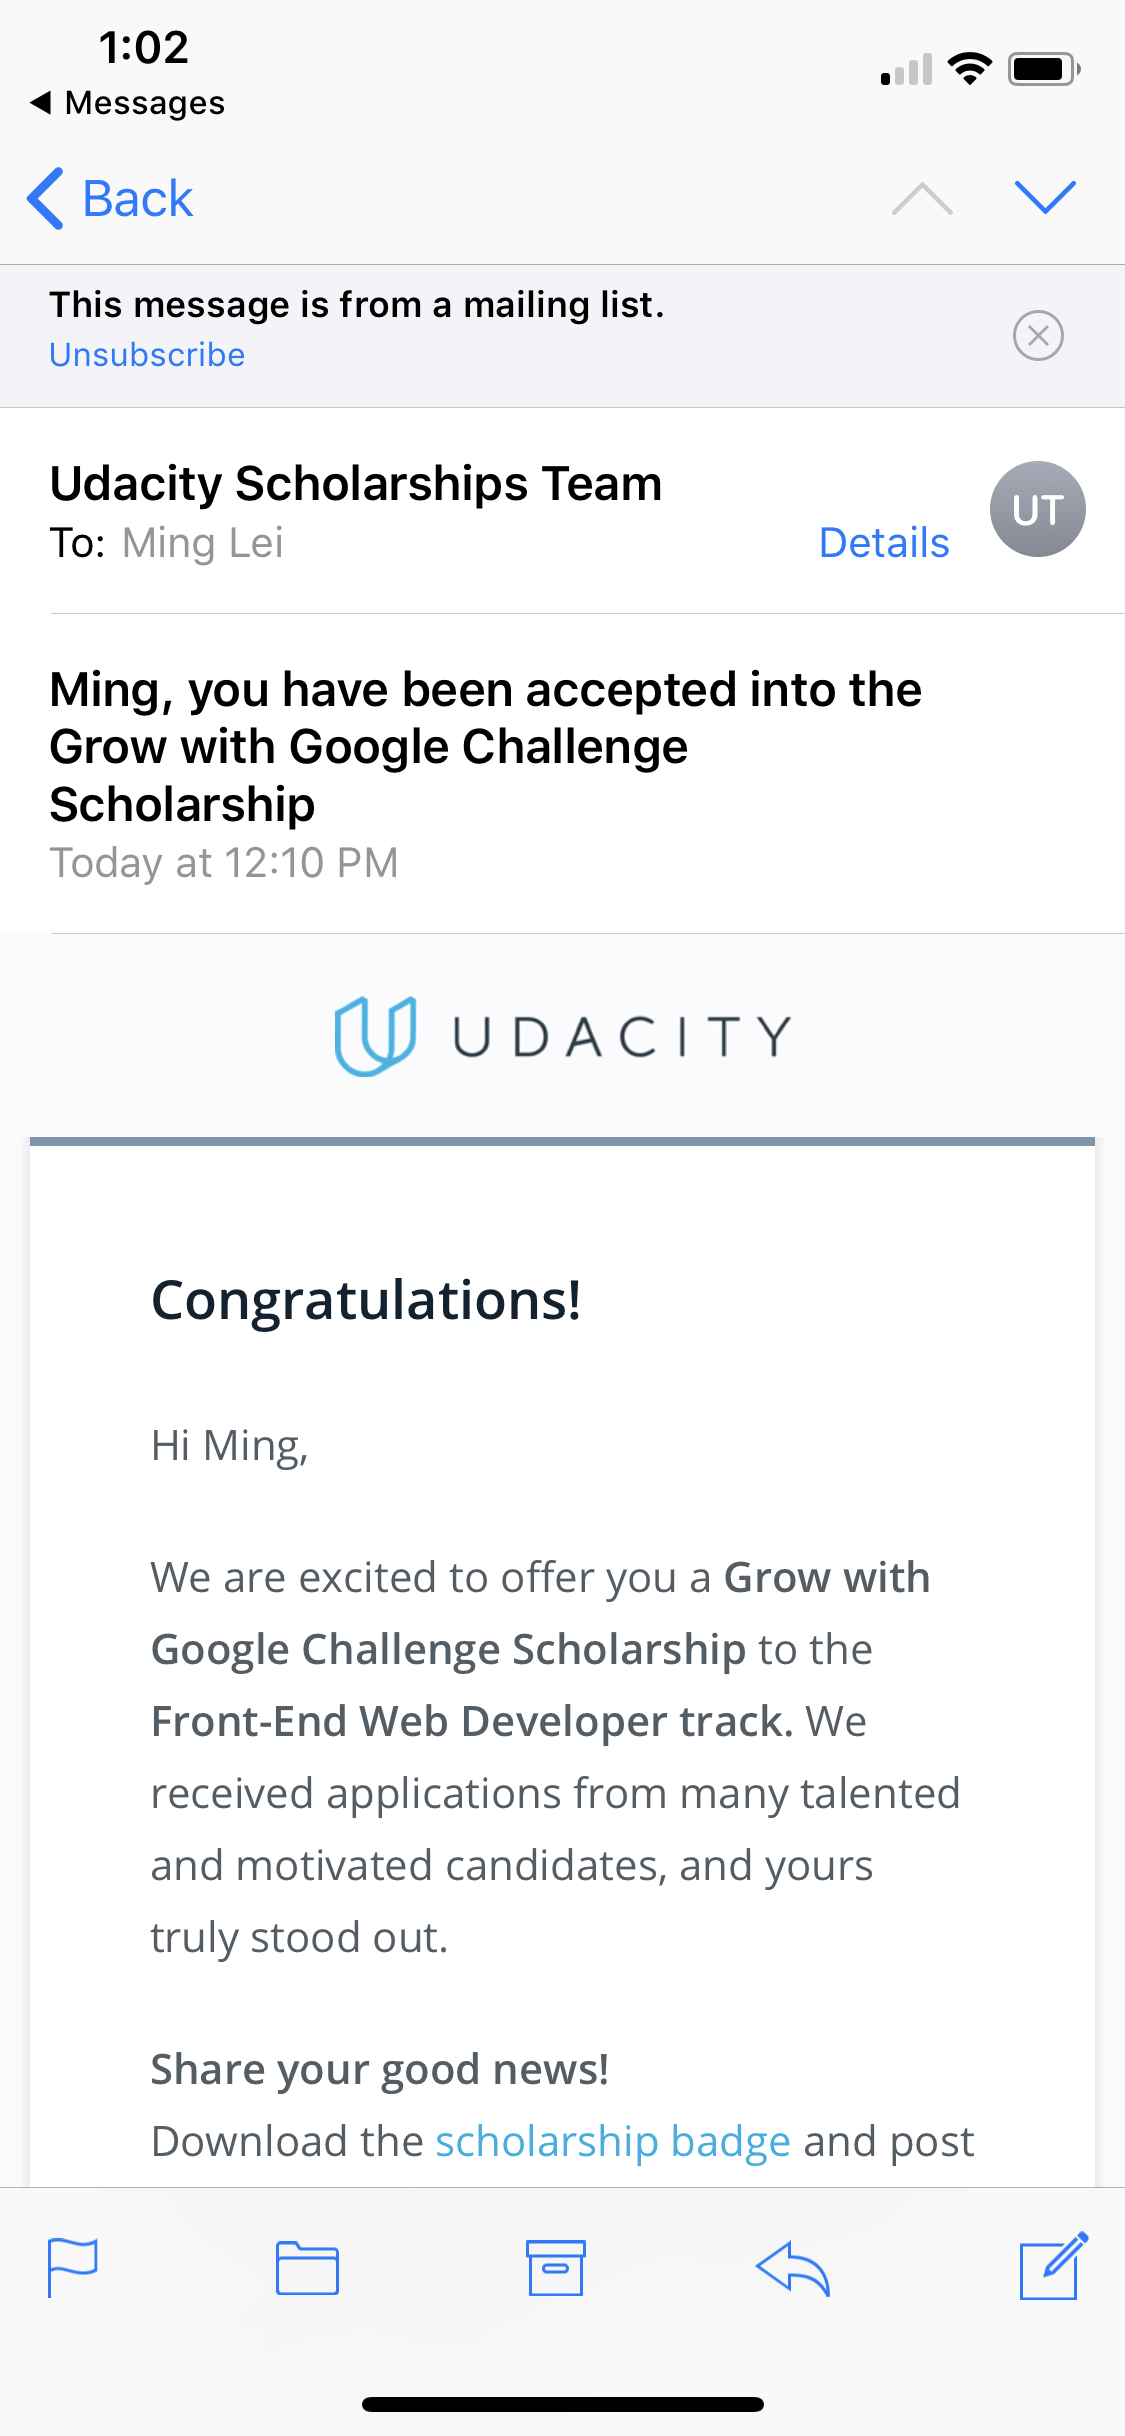 E-mail from Udacity.